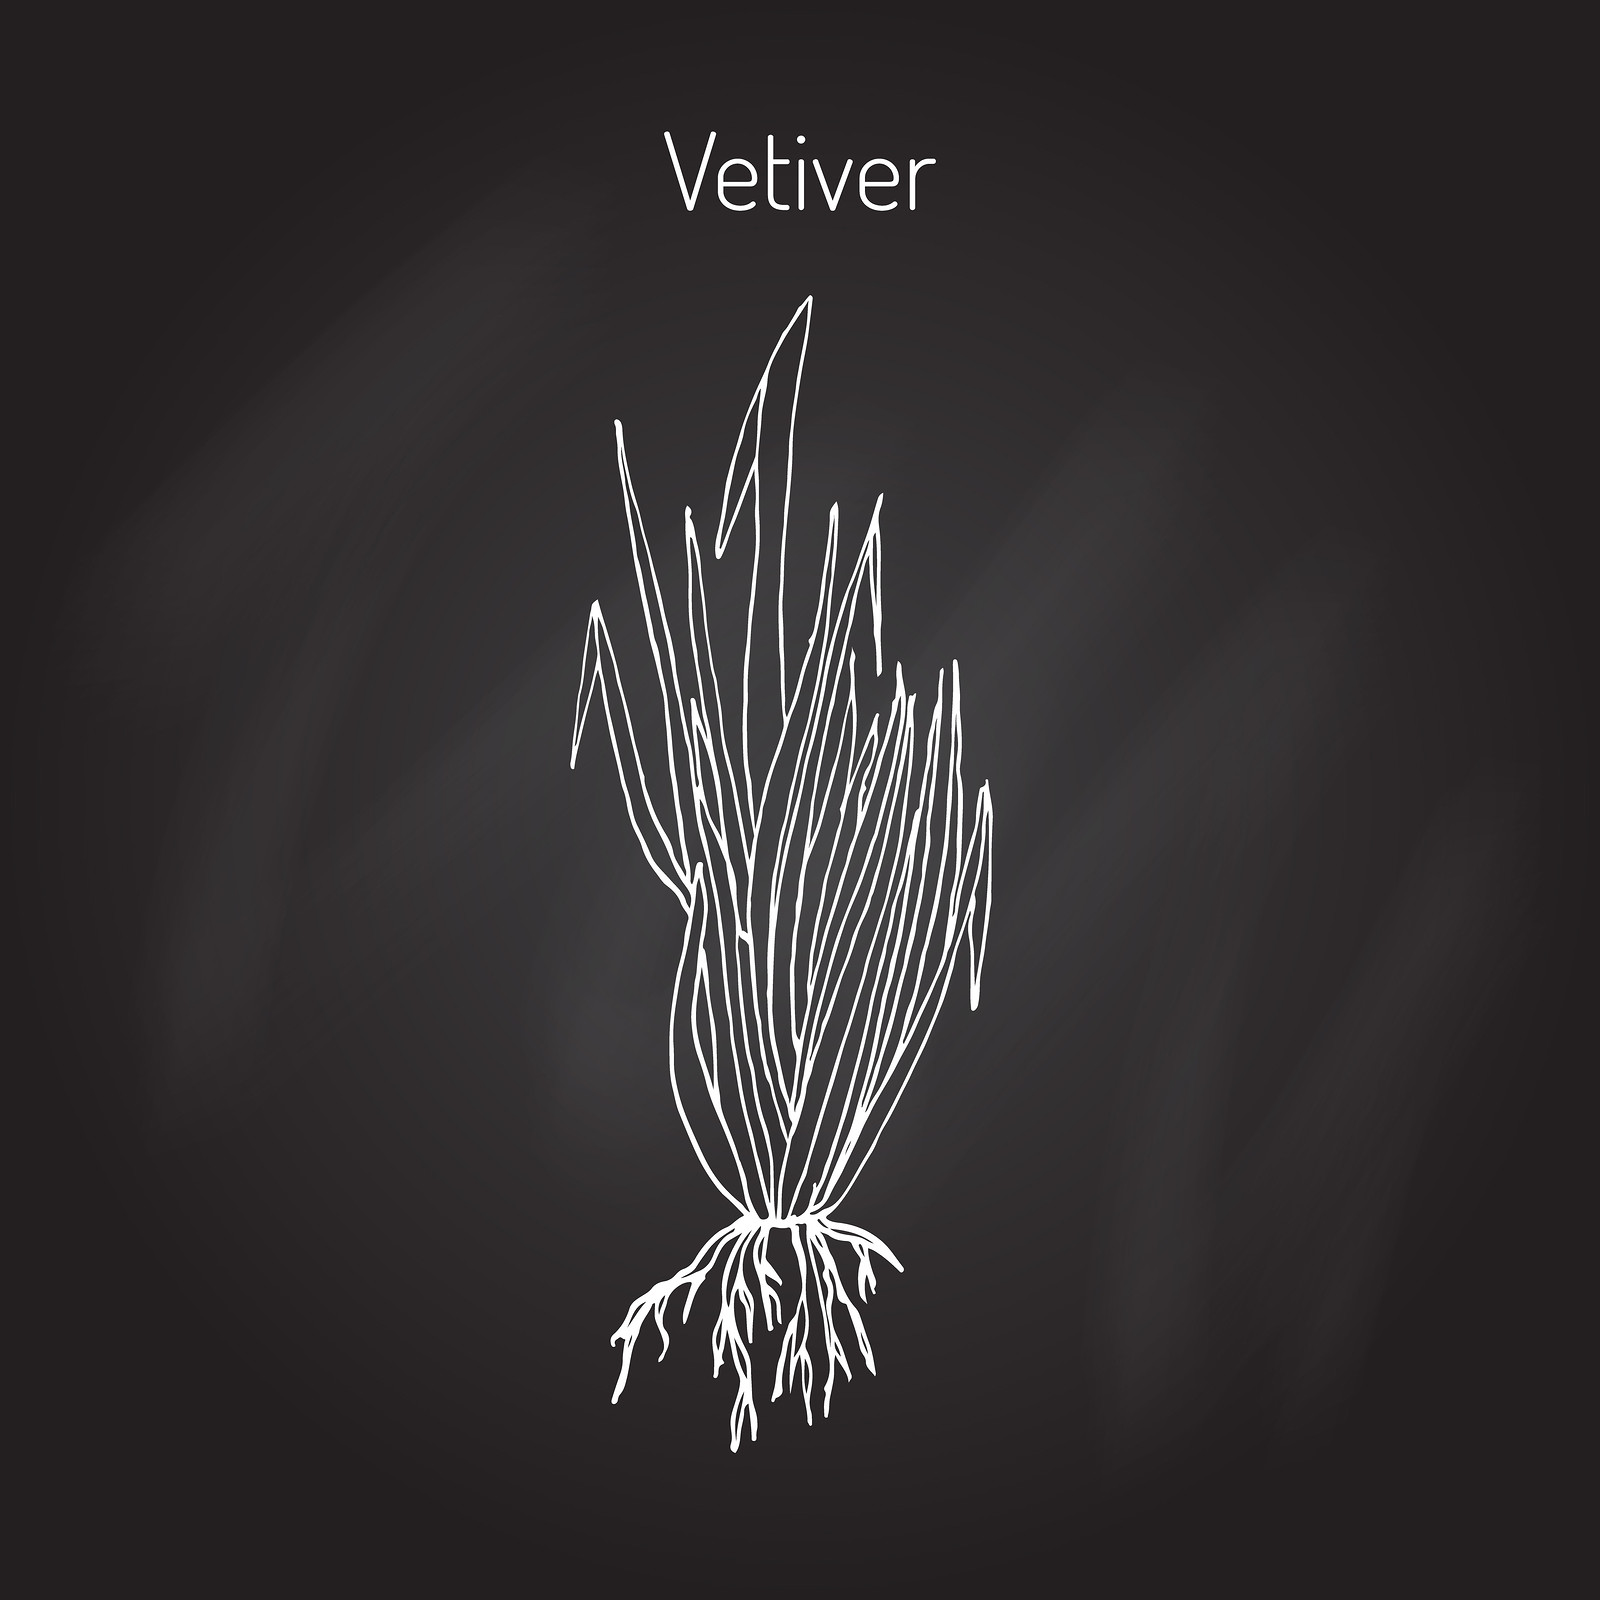 The vetiver plant. its essential oils are used for treating the root chakra.